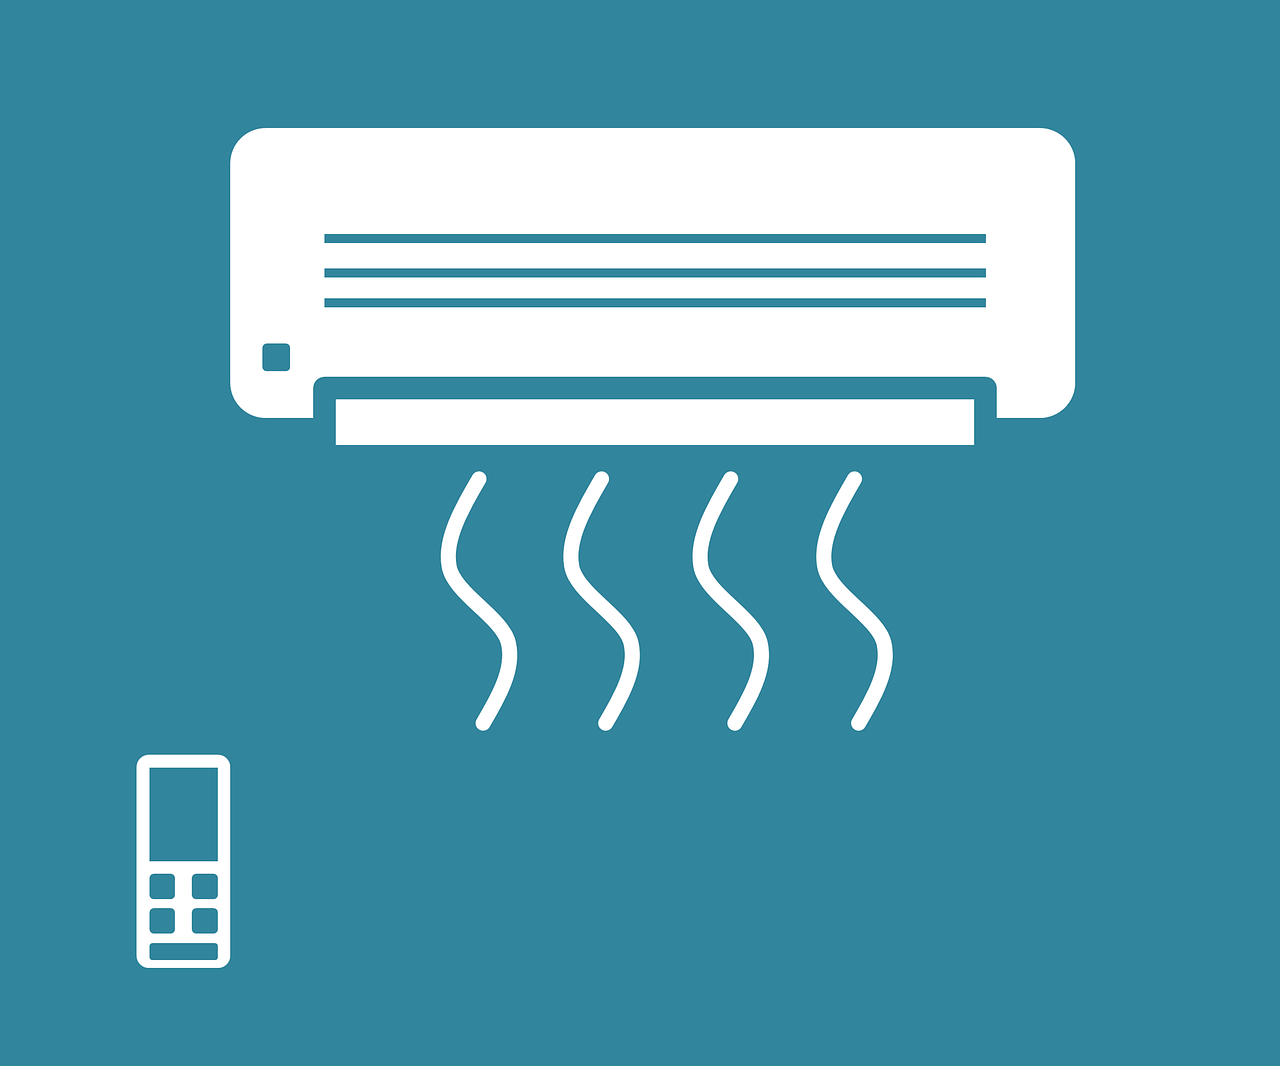 air-conditioning-3679756_1280.png